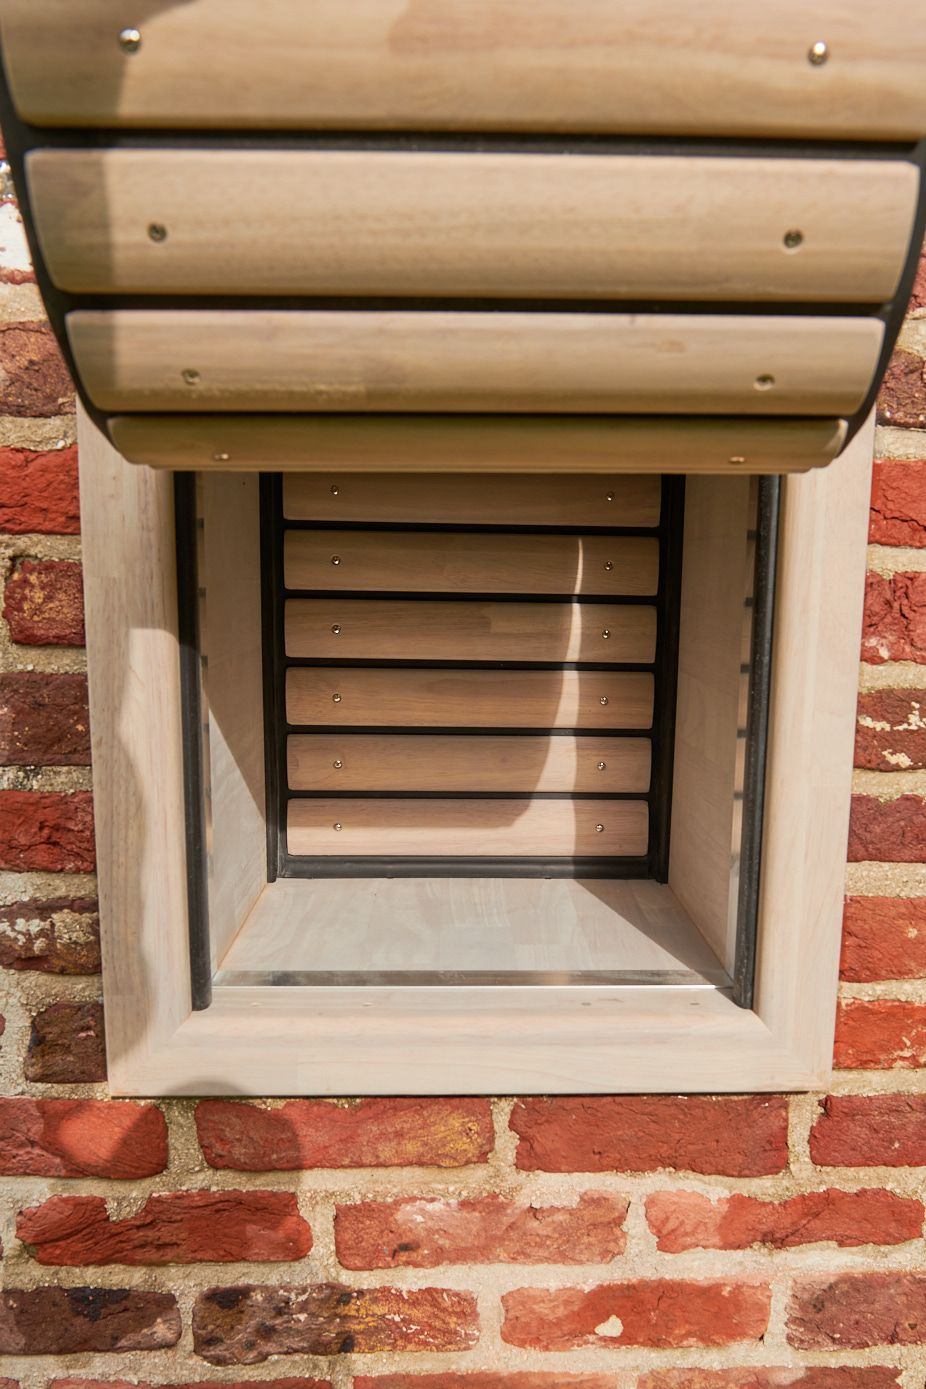 Dog flap | Dog door | Cat flap | Cat door | Installation of a dog flap or cat flap in a wall | windproof and watertight tunnel in cavity wall | © Tomsgates